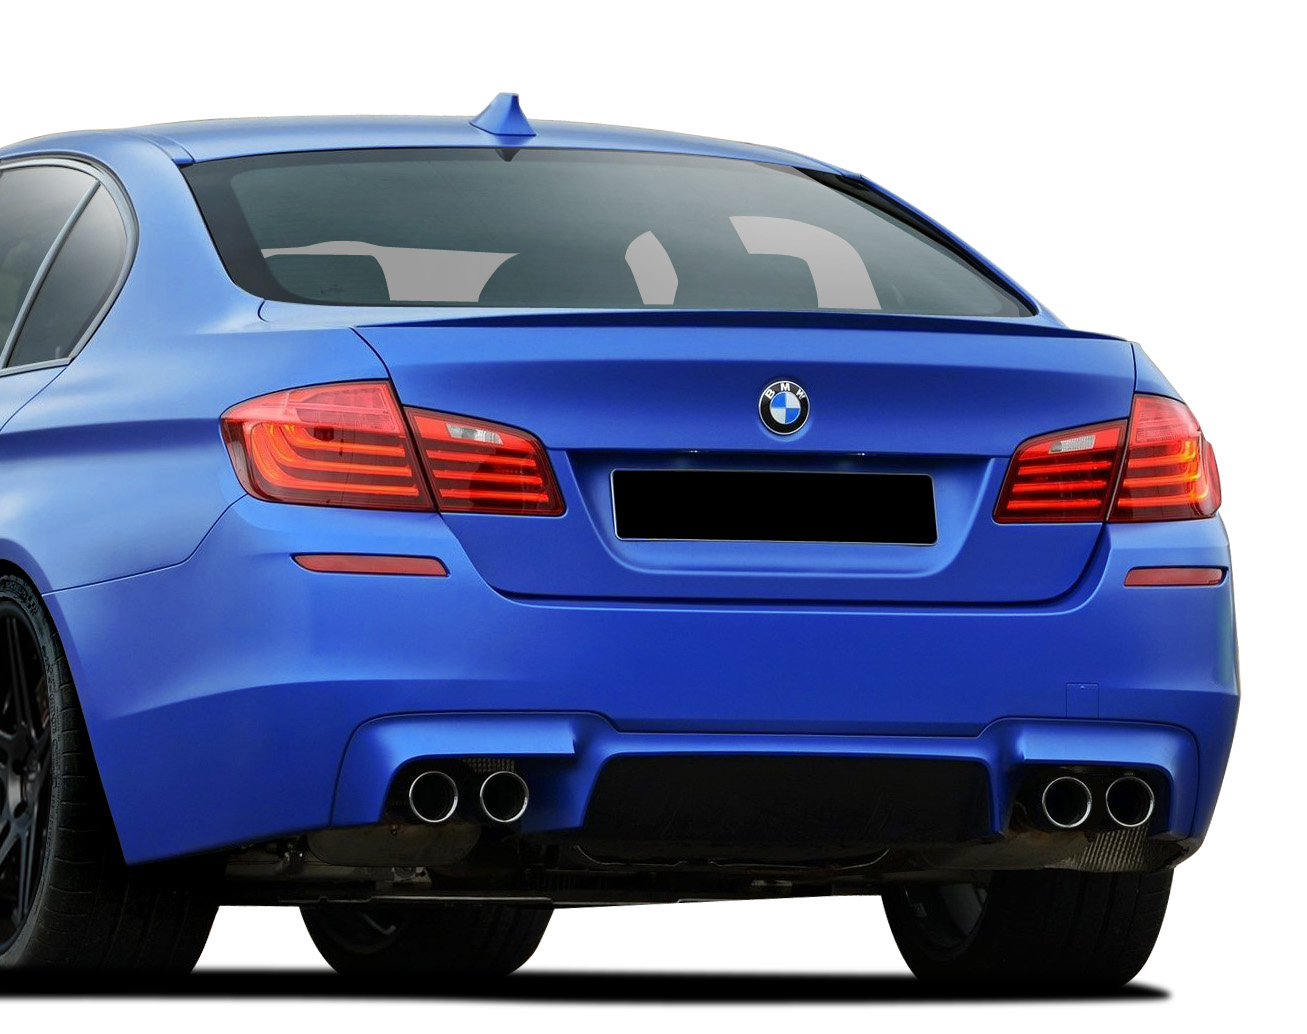 2016 BMW 5 Series 4DR Body Kit Bodykit - BMW 5 Series F10 Vaero M5 Look Conversion Kit ( without PDC , with Washer , without Camera ) - 6 Pi